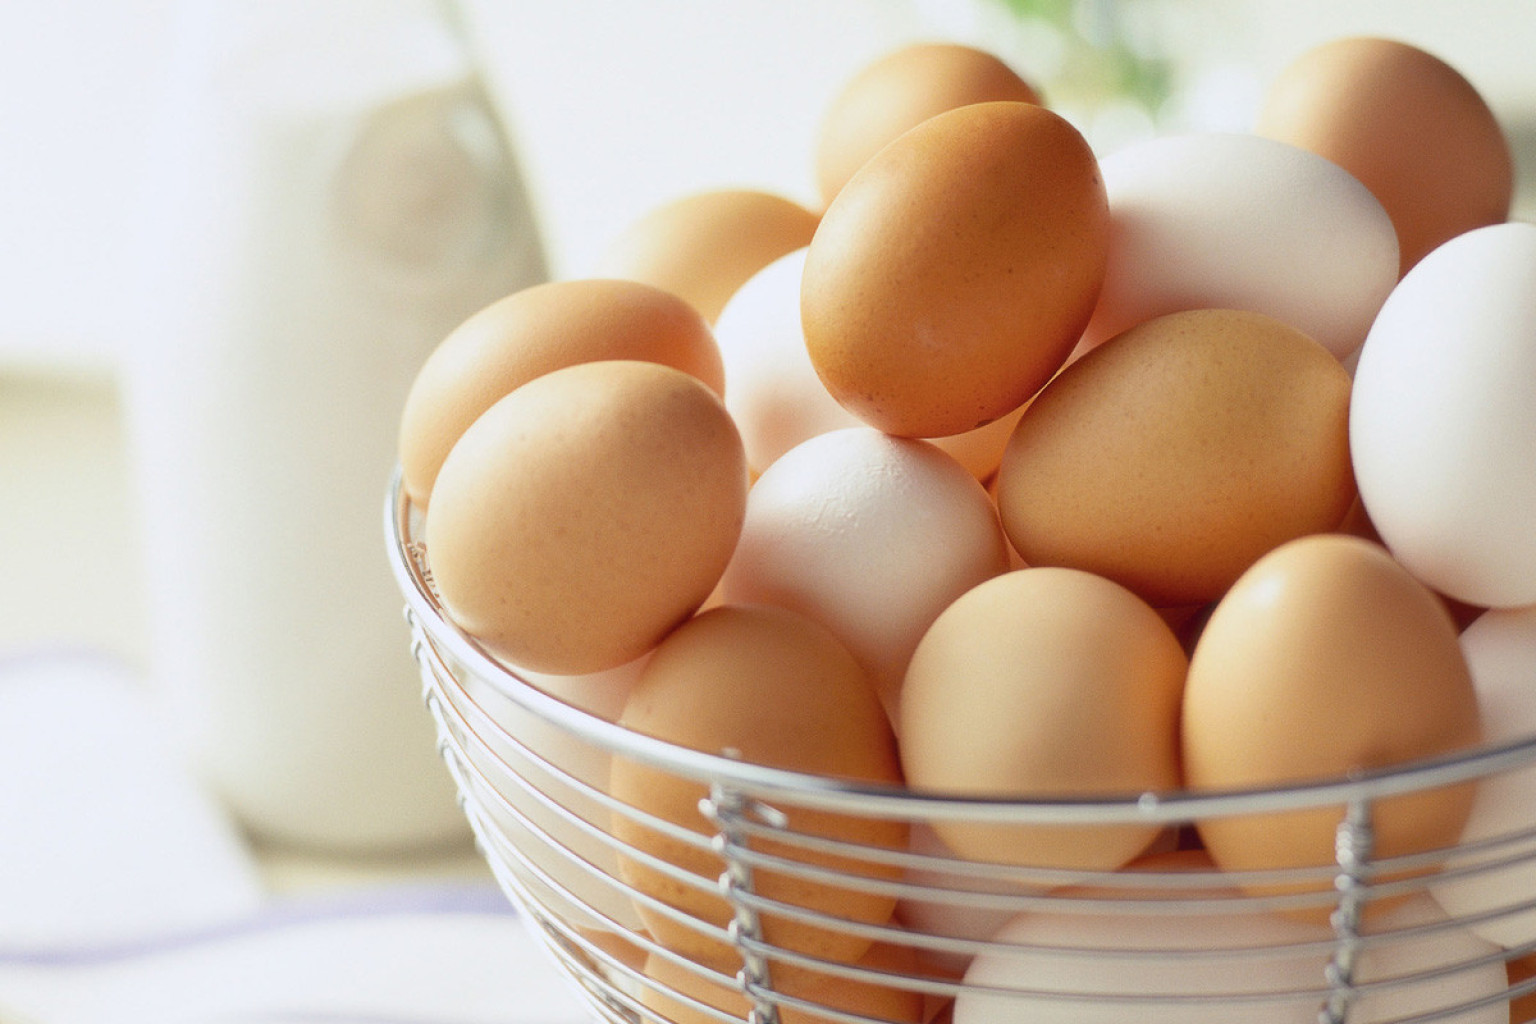 You can cook eggs whichever you want and still get the benefits you need.